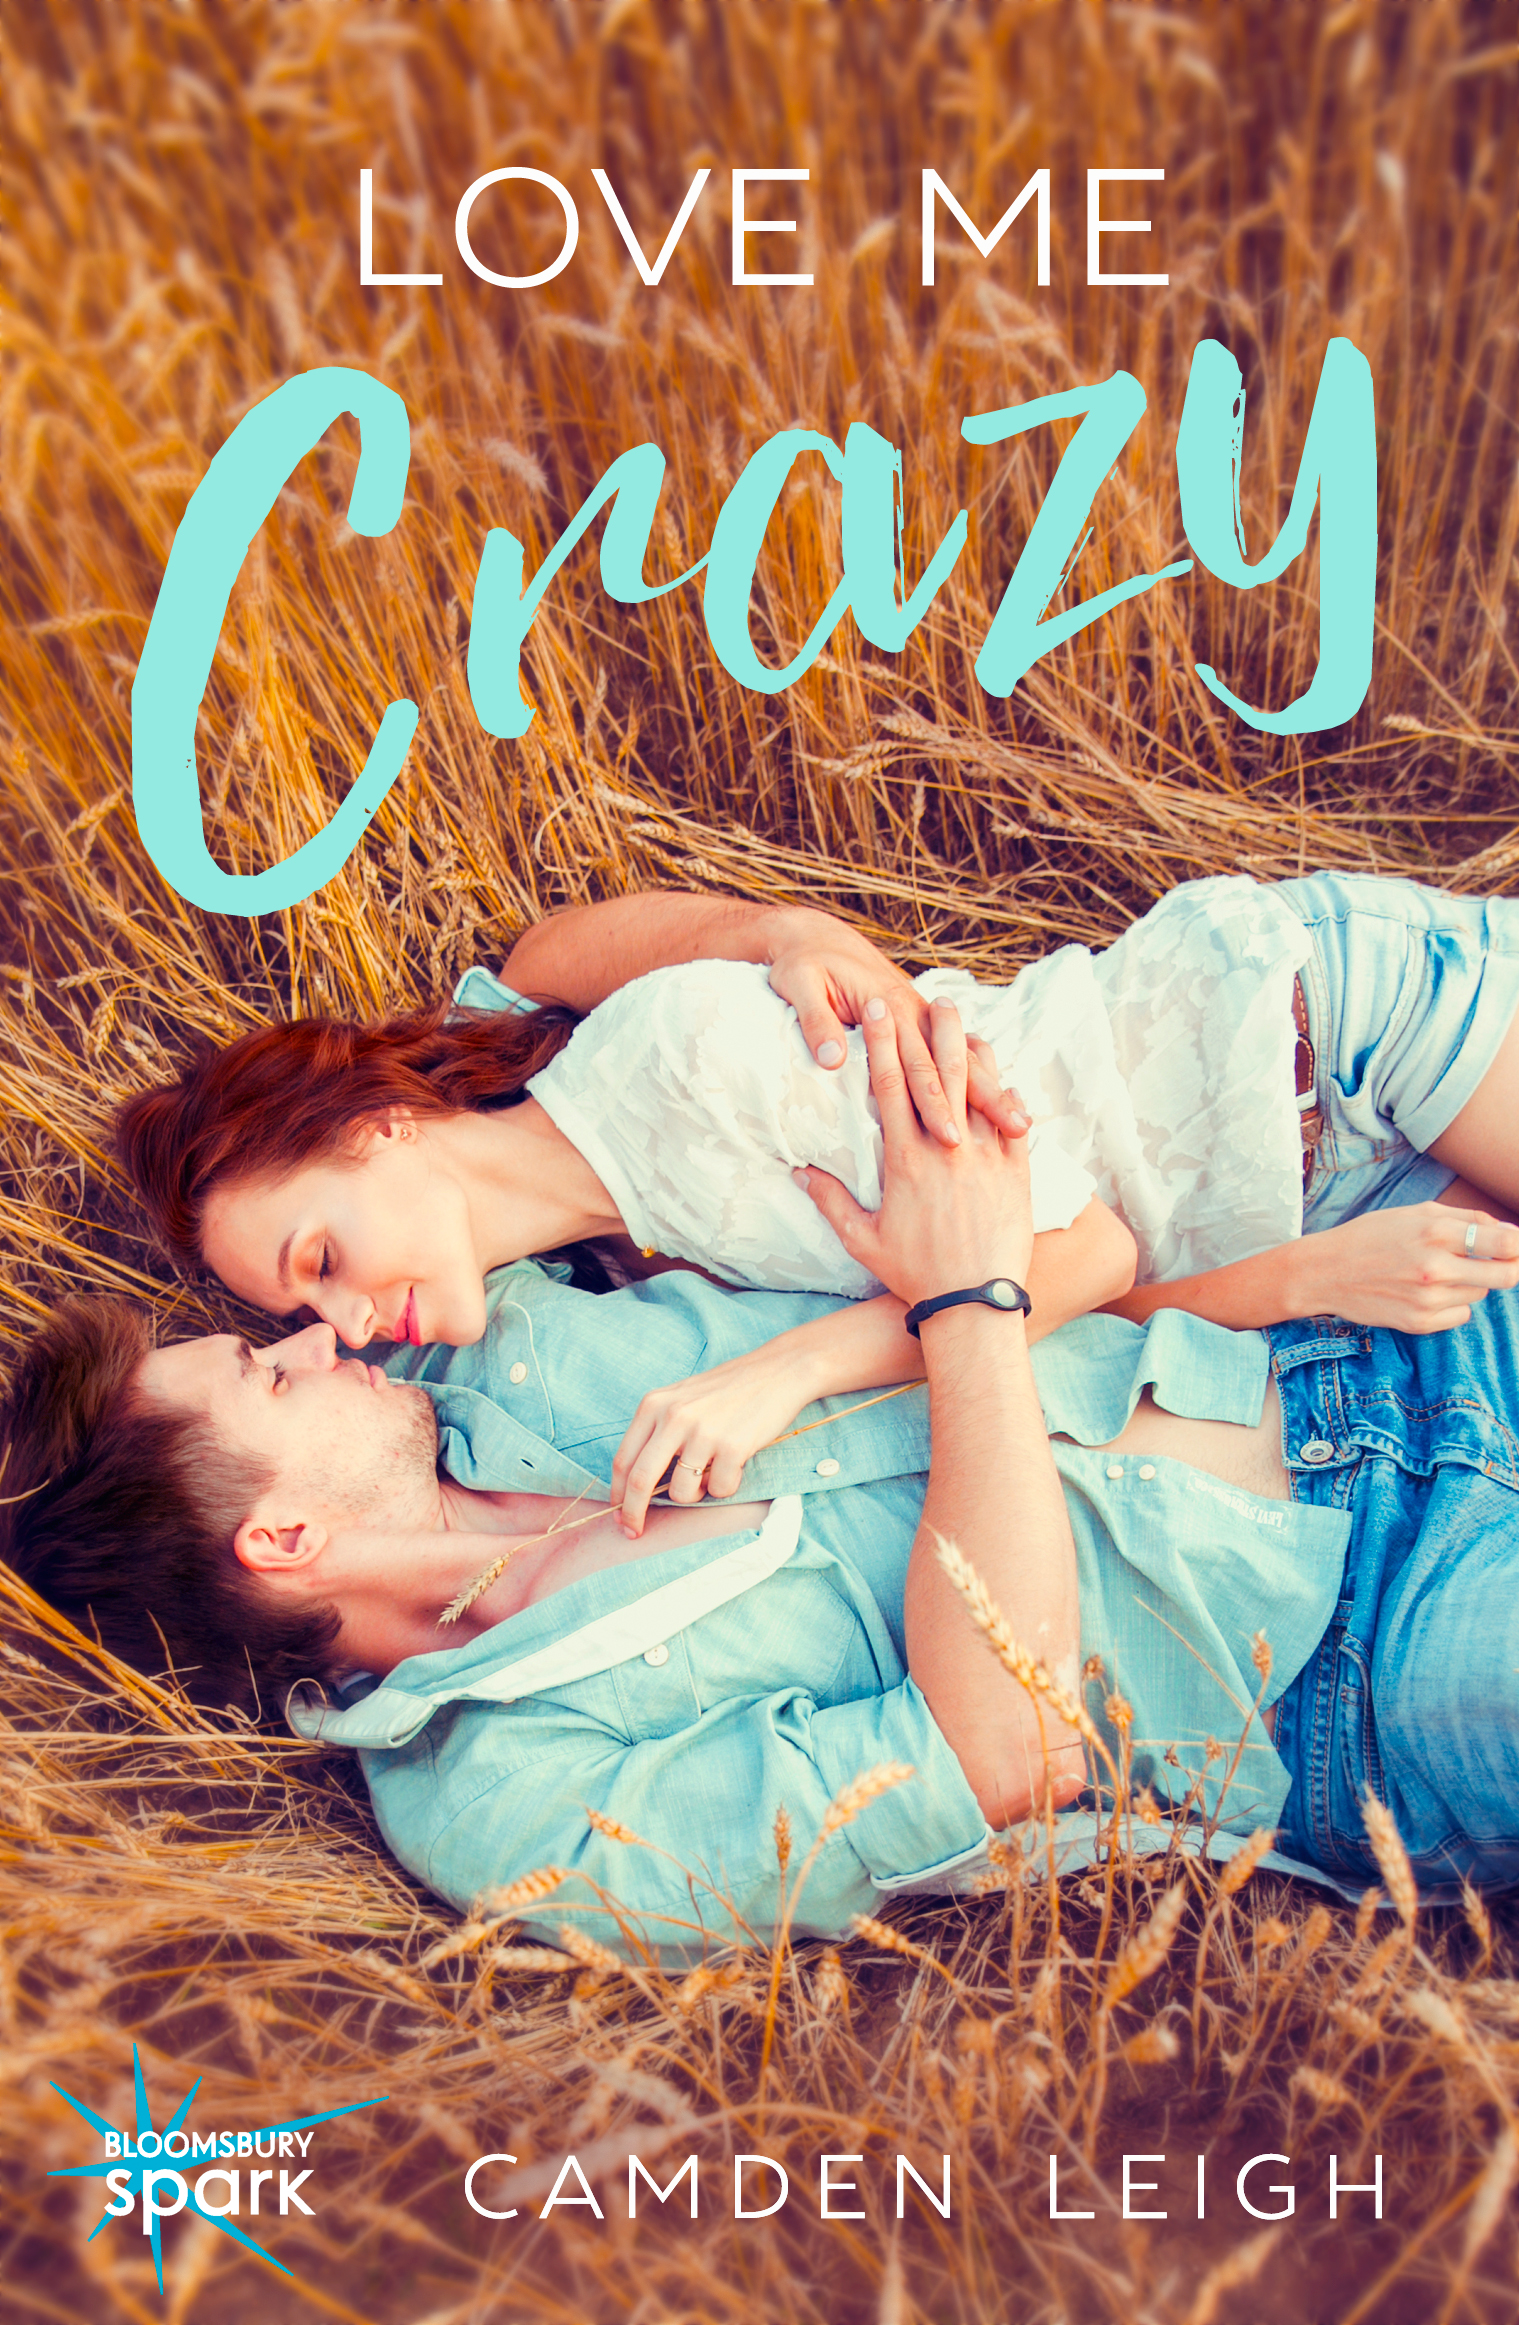 Love Me Crazy Camden Leigh New Adult Contemporary Romance Cover Southern love